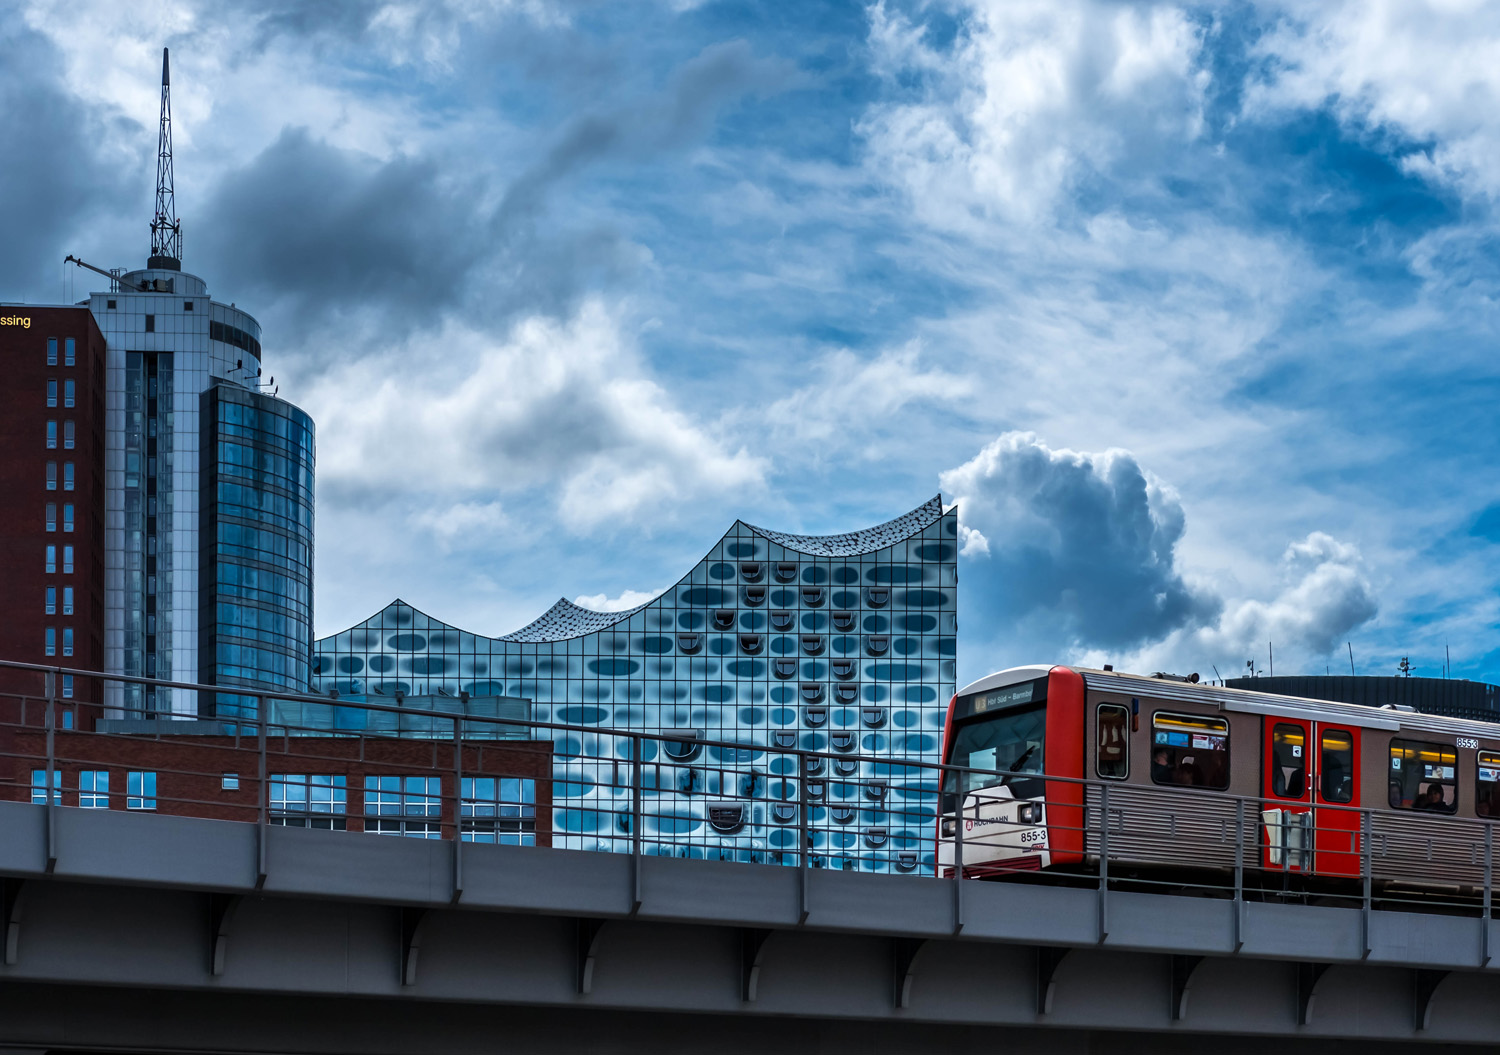 Berlin skyline with a train and futuristic buildings